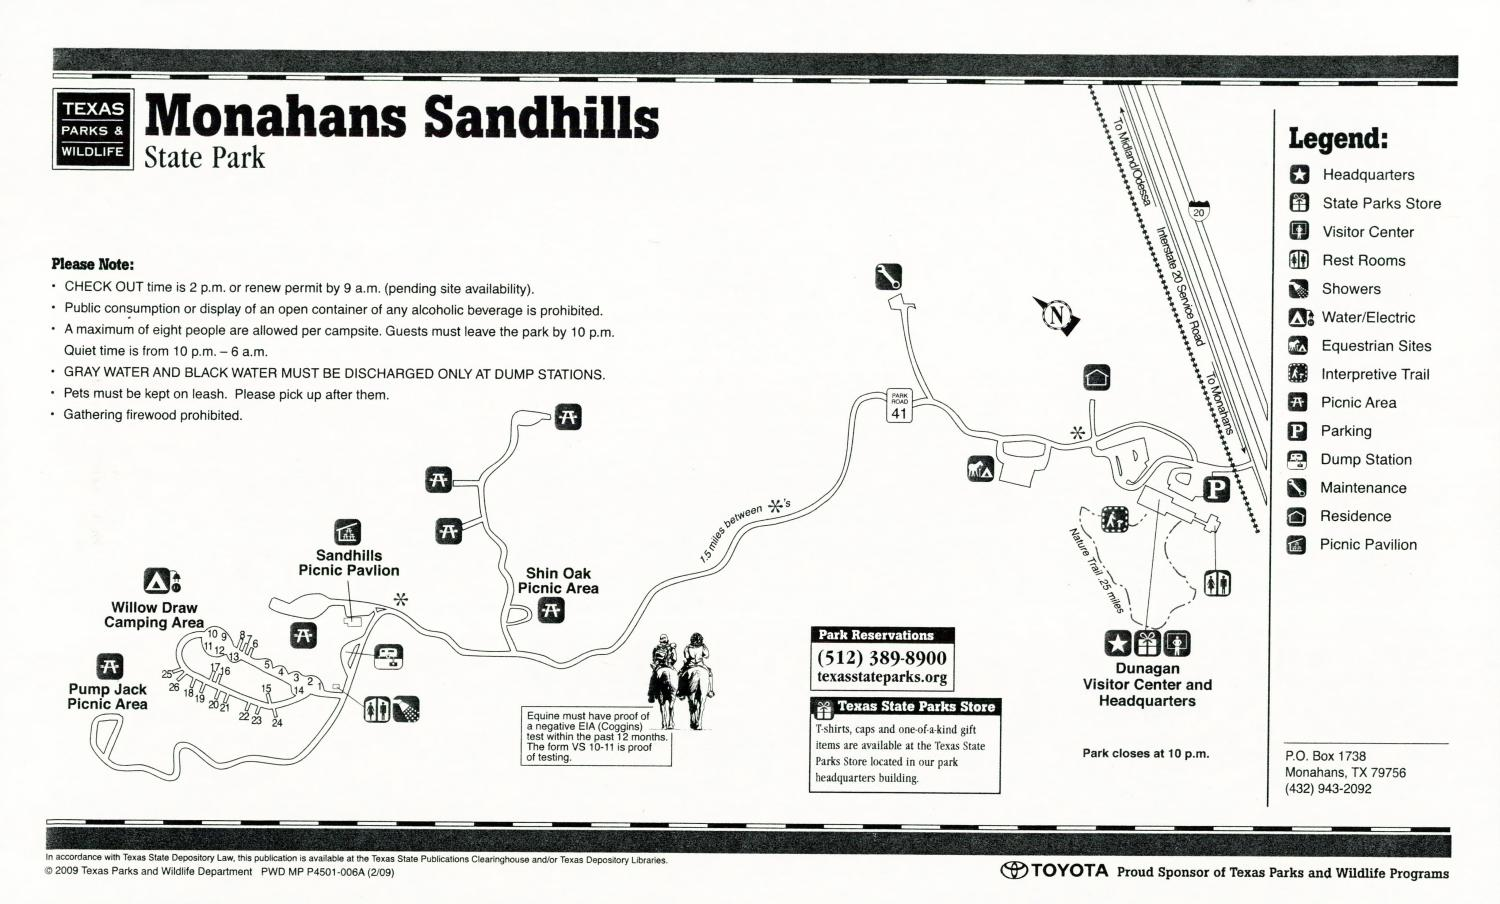 Monahans Sandhills State Park, Map of the Monahans Sandhills State Park outlining hiking trails and highlighting activities, facilities, and other features such as bathrooms, lodgings, water/electric, etc. It also contains general information for the park and for the Texas Parks and Wildlife Department.,